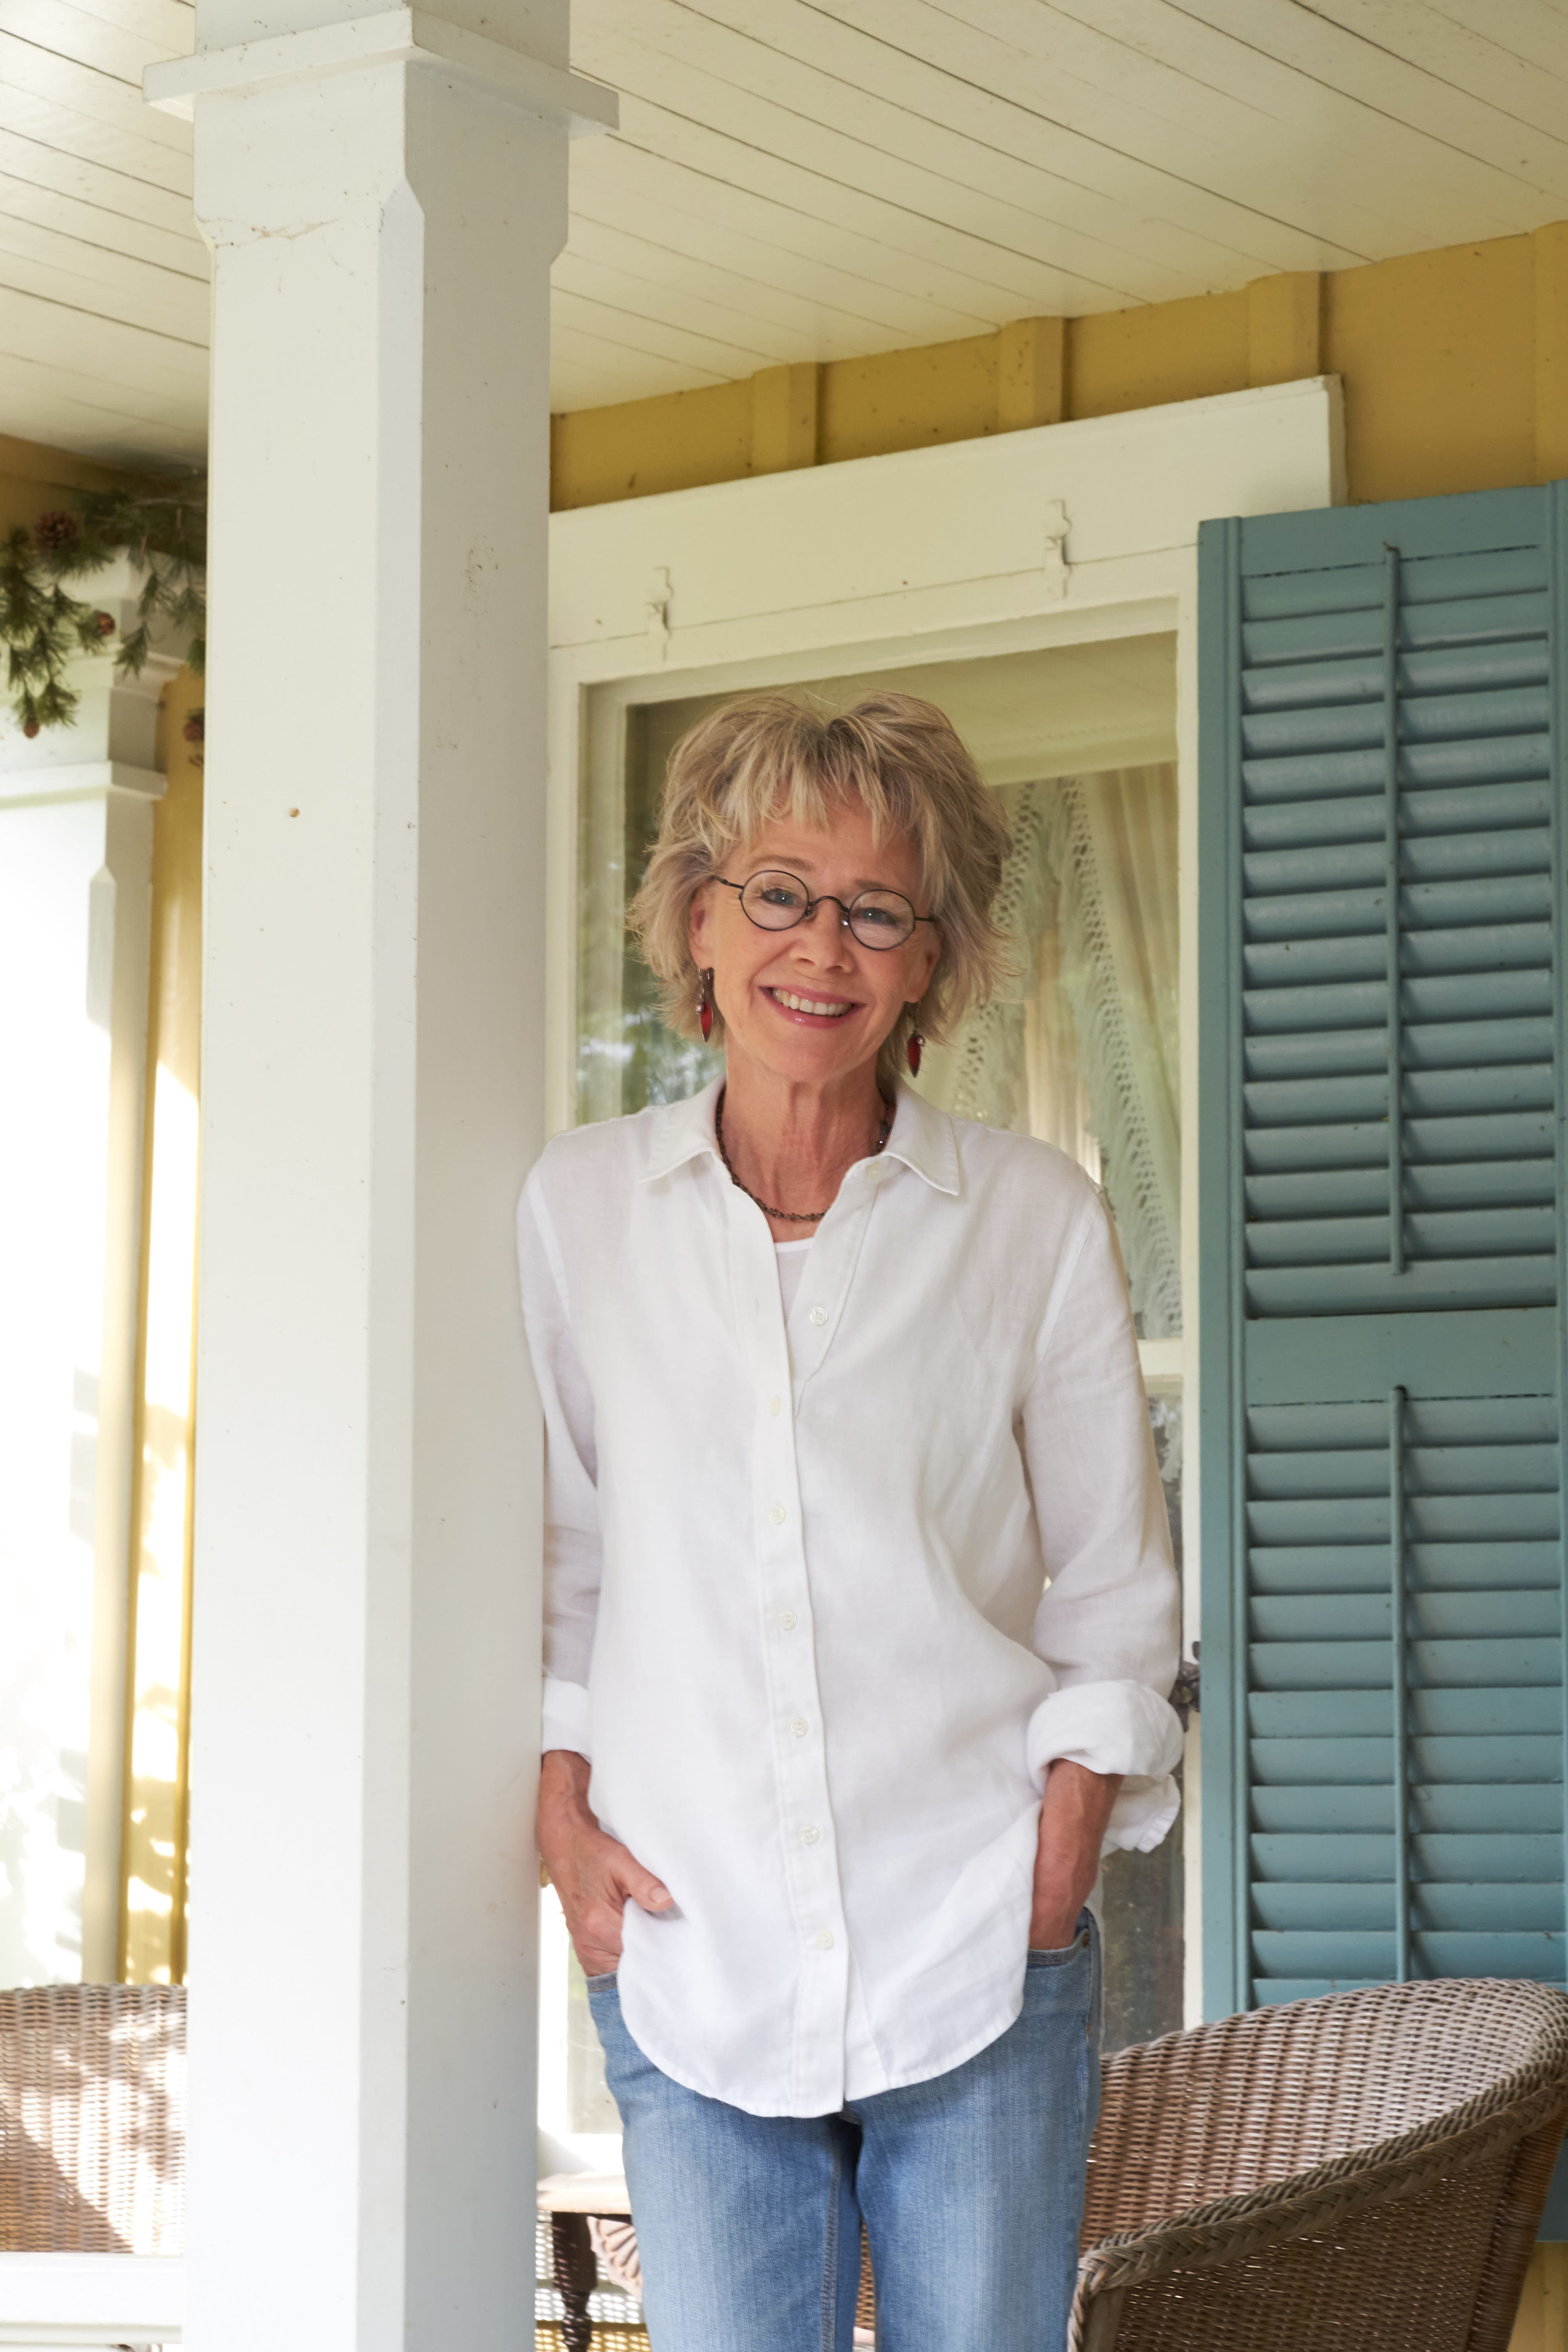 Voelckers Photo - Standing on Porch.jpg